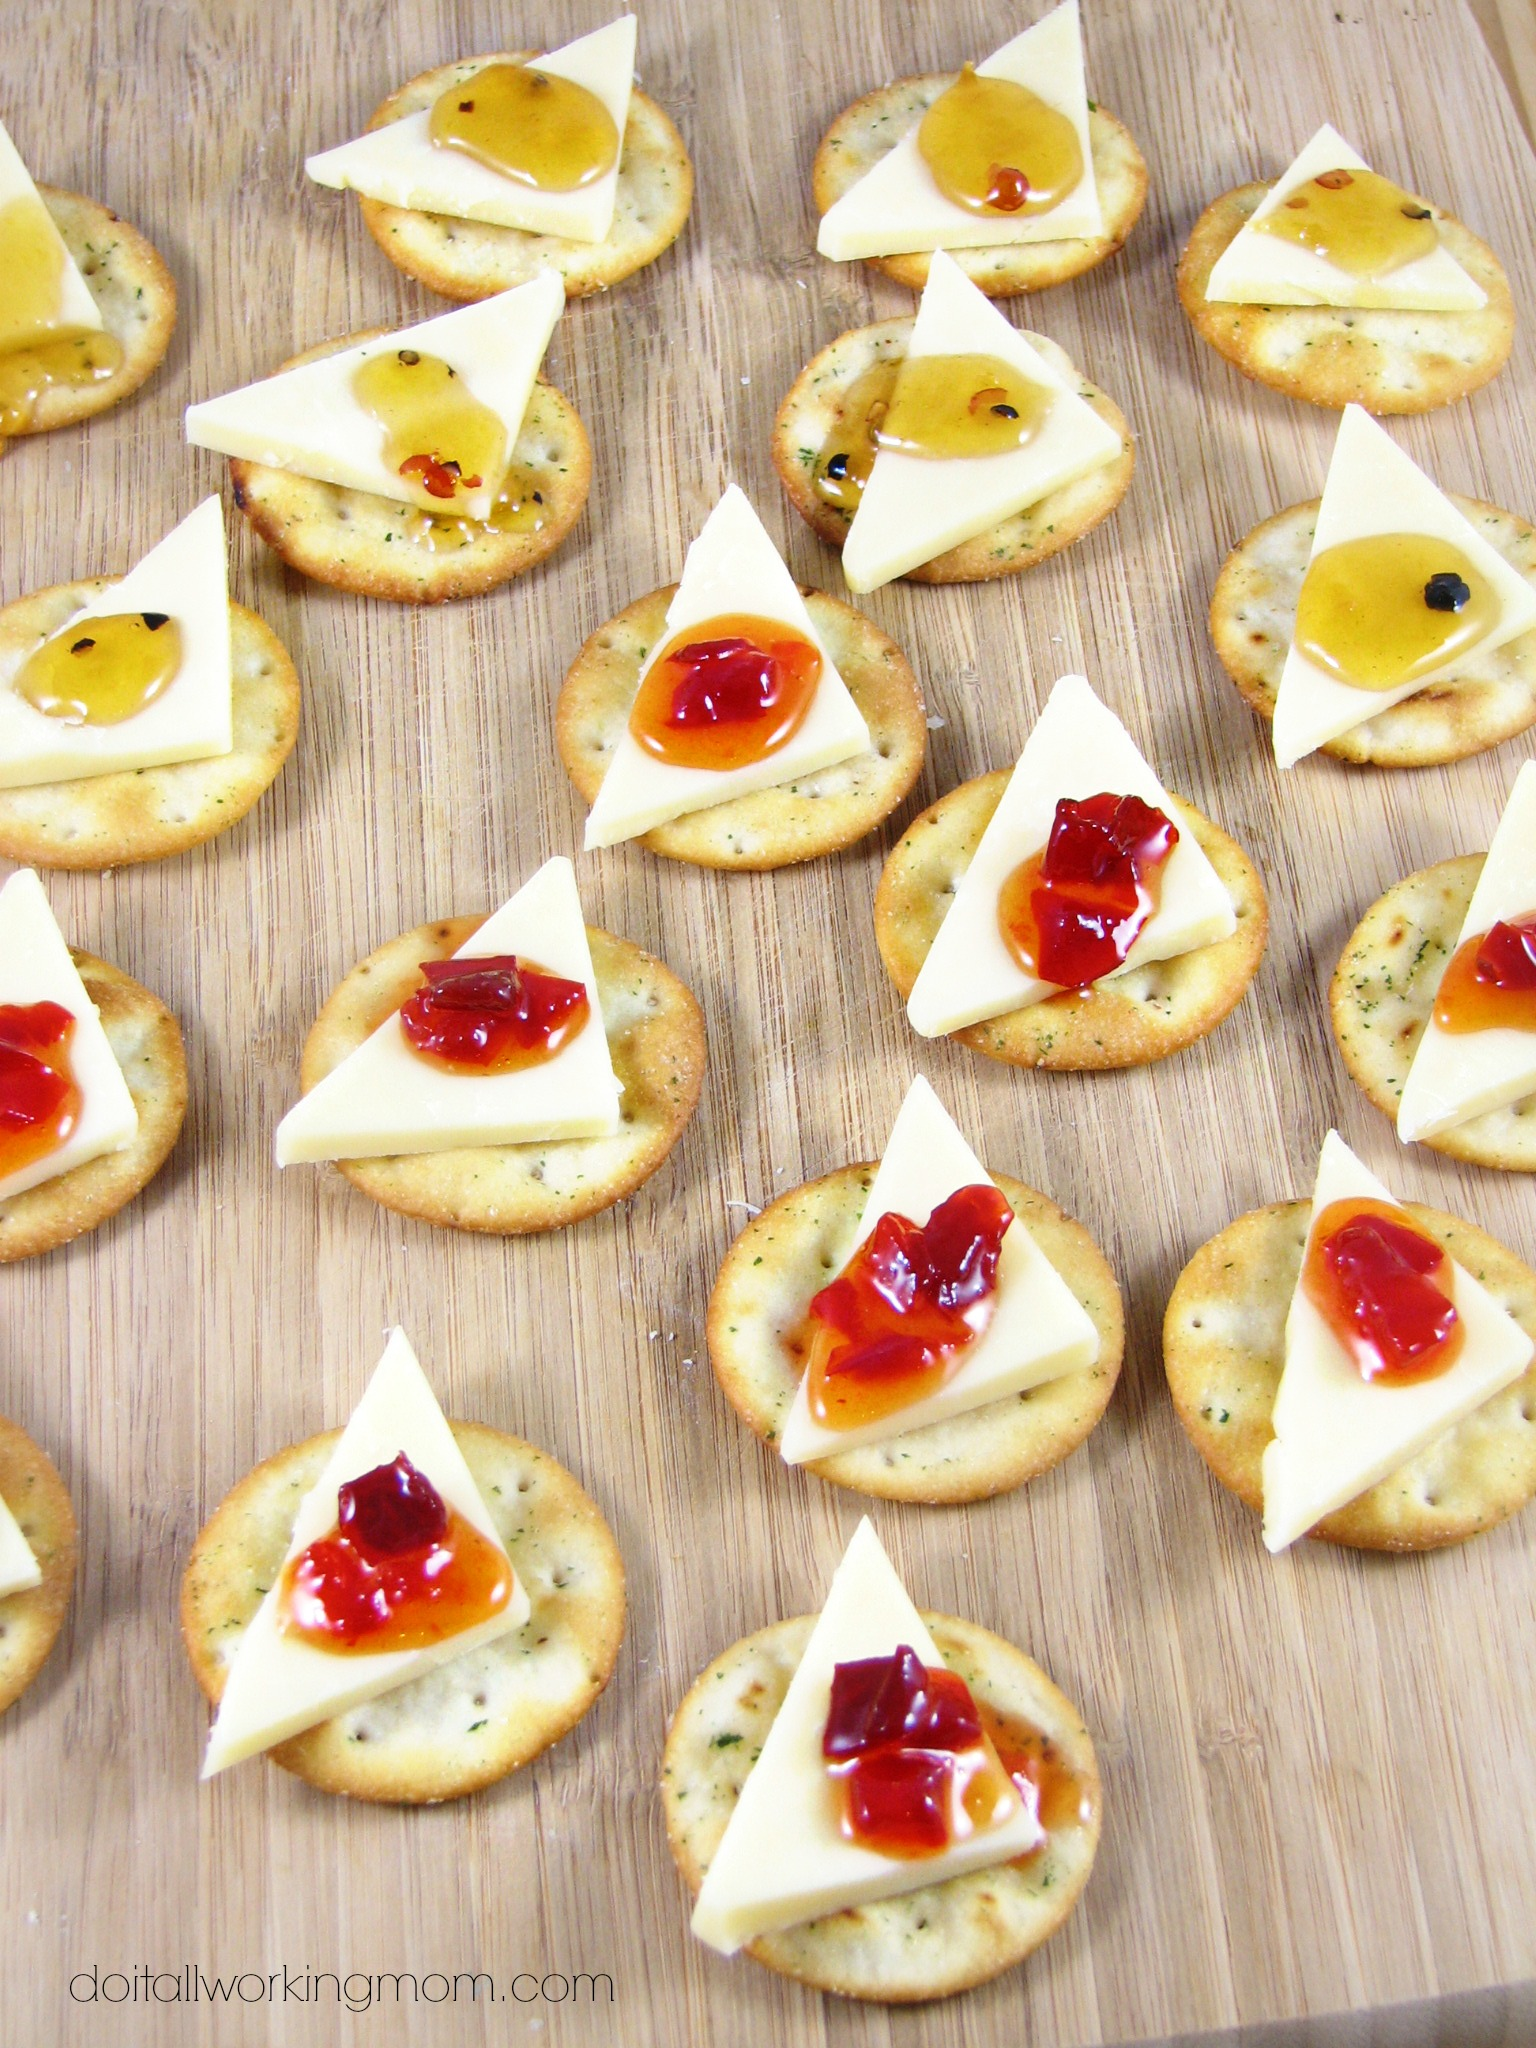 Aged Cheddar and Jelly Appetizers